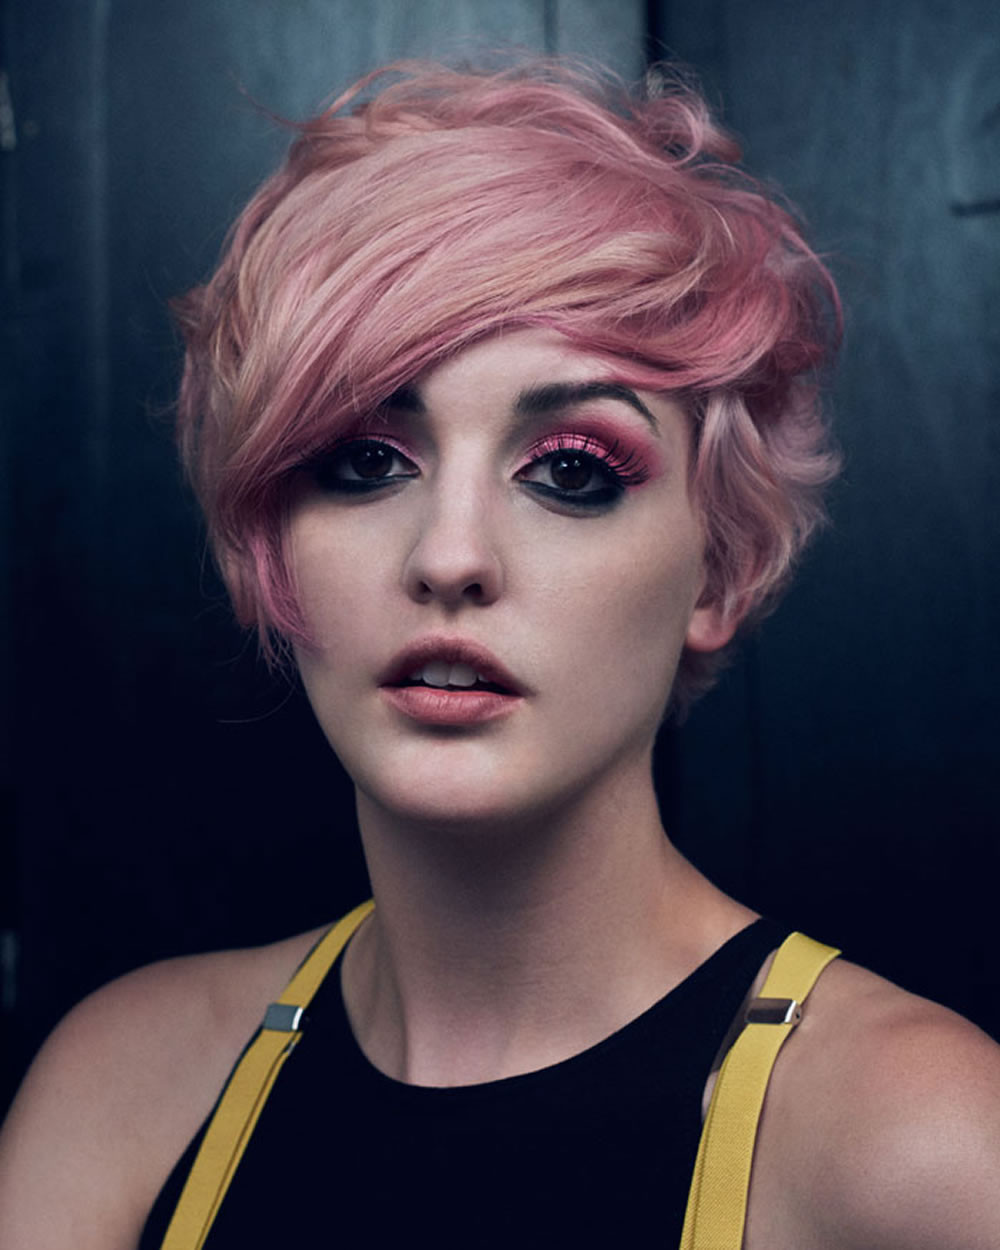 Hairstyles For Short Haircuts  63 Unique Pixie & Bob Haircuts Hairstyles for Short Hair